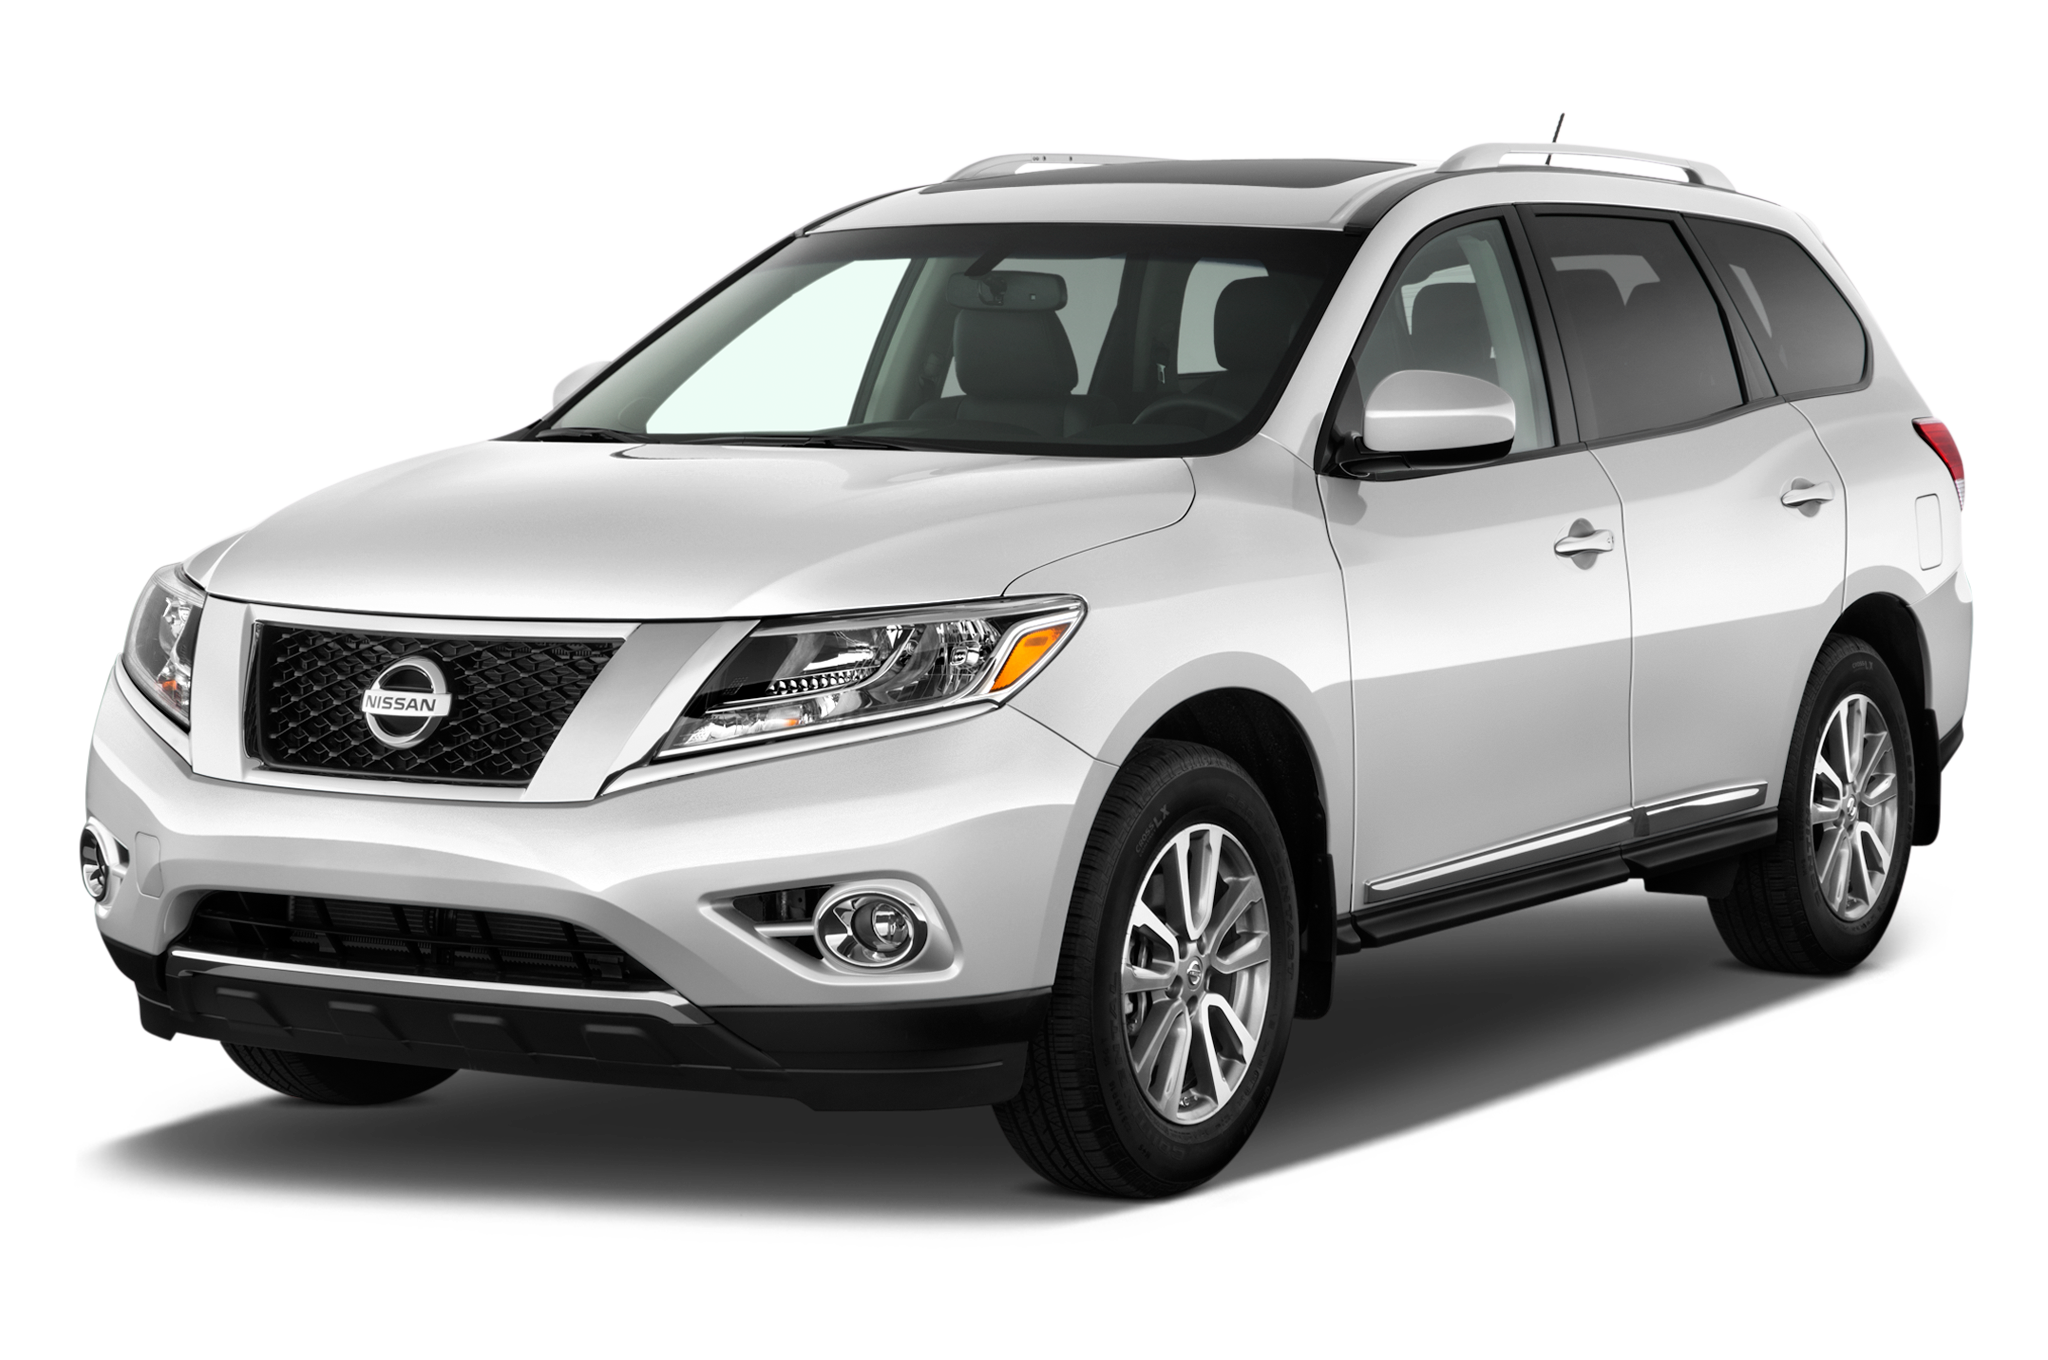 trail models specs nissan x information pictures wallpaper suv